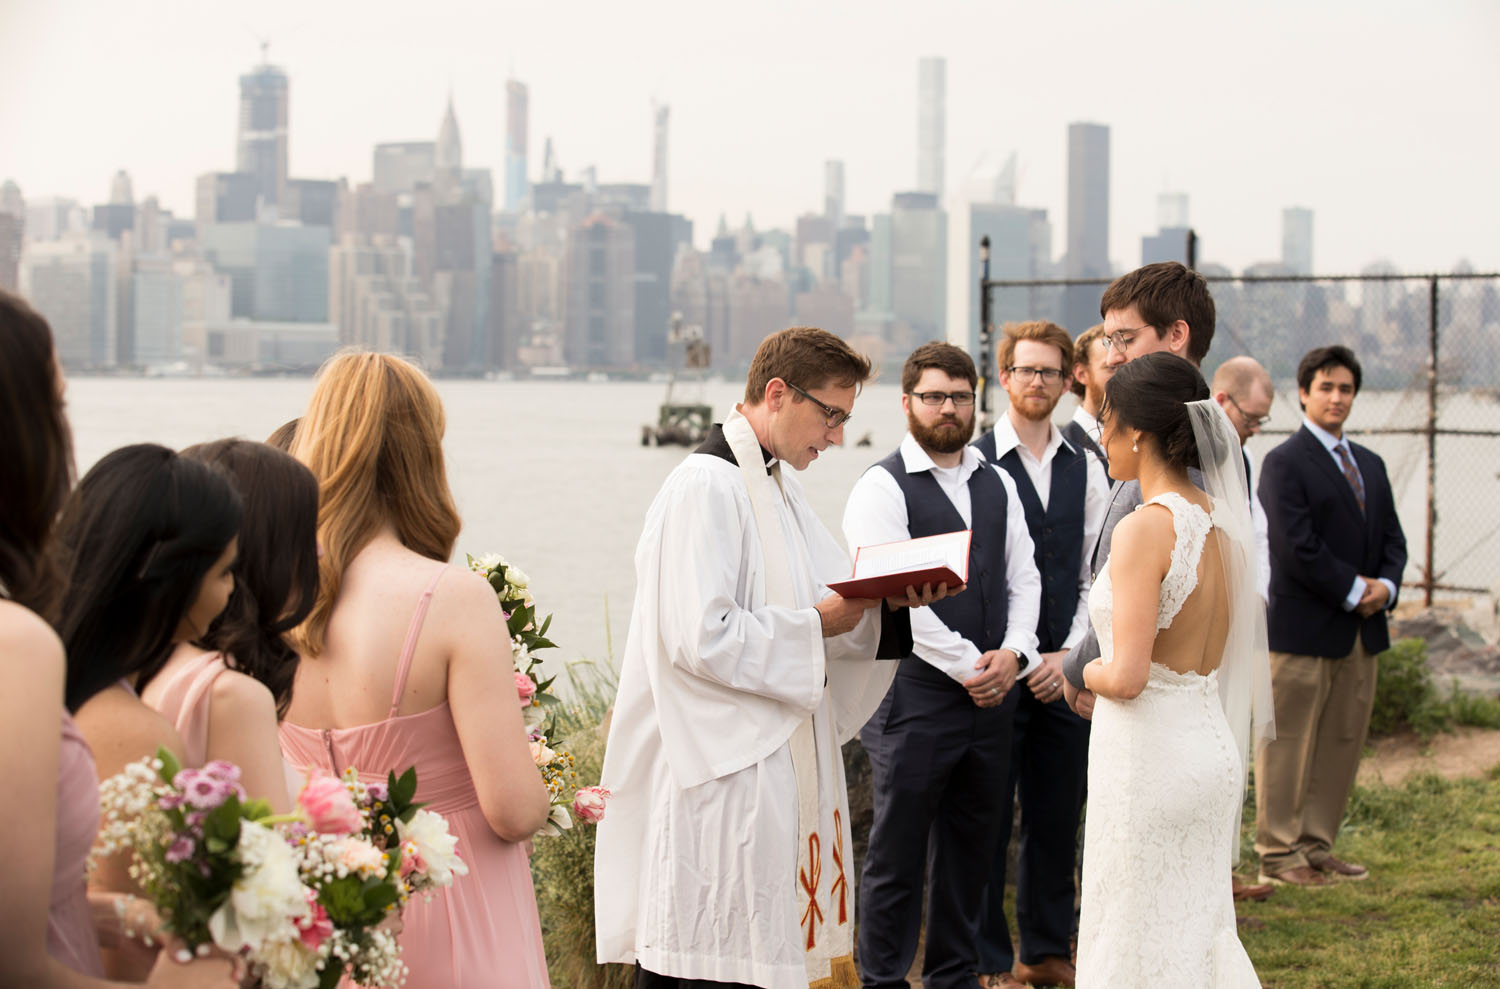 williamsburg_bat_haus_wedding_photographer_bushwick_16.jpg